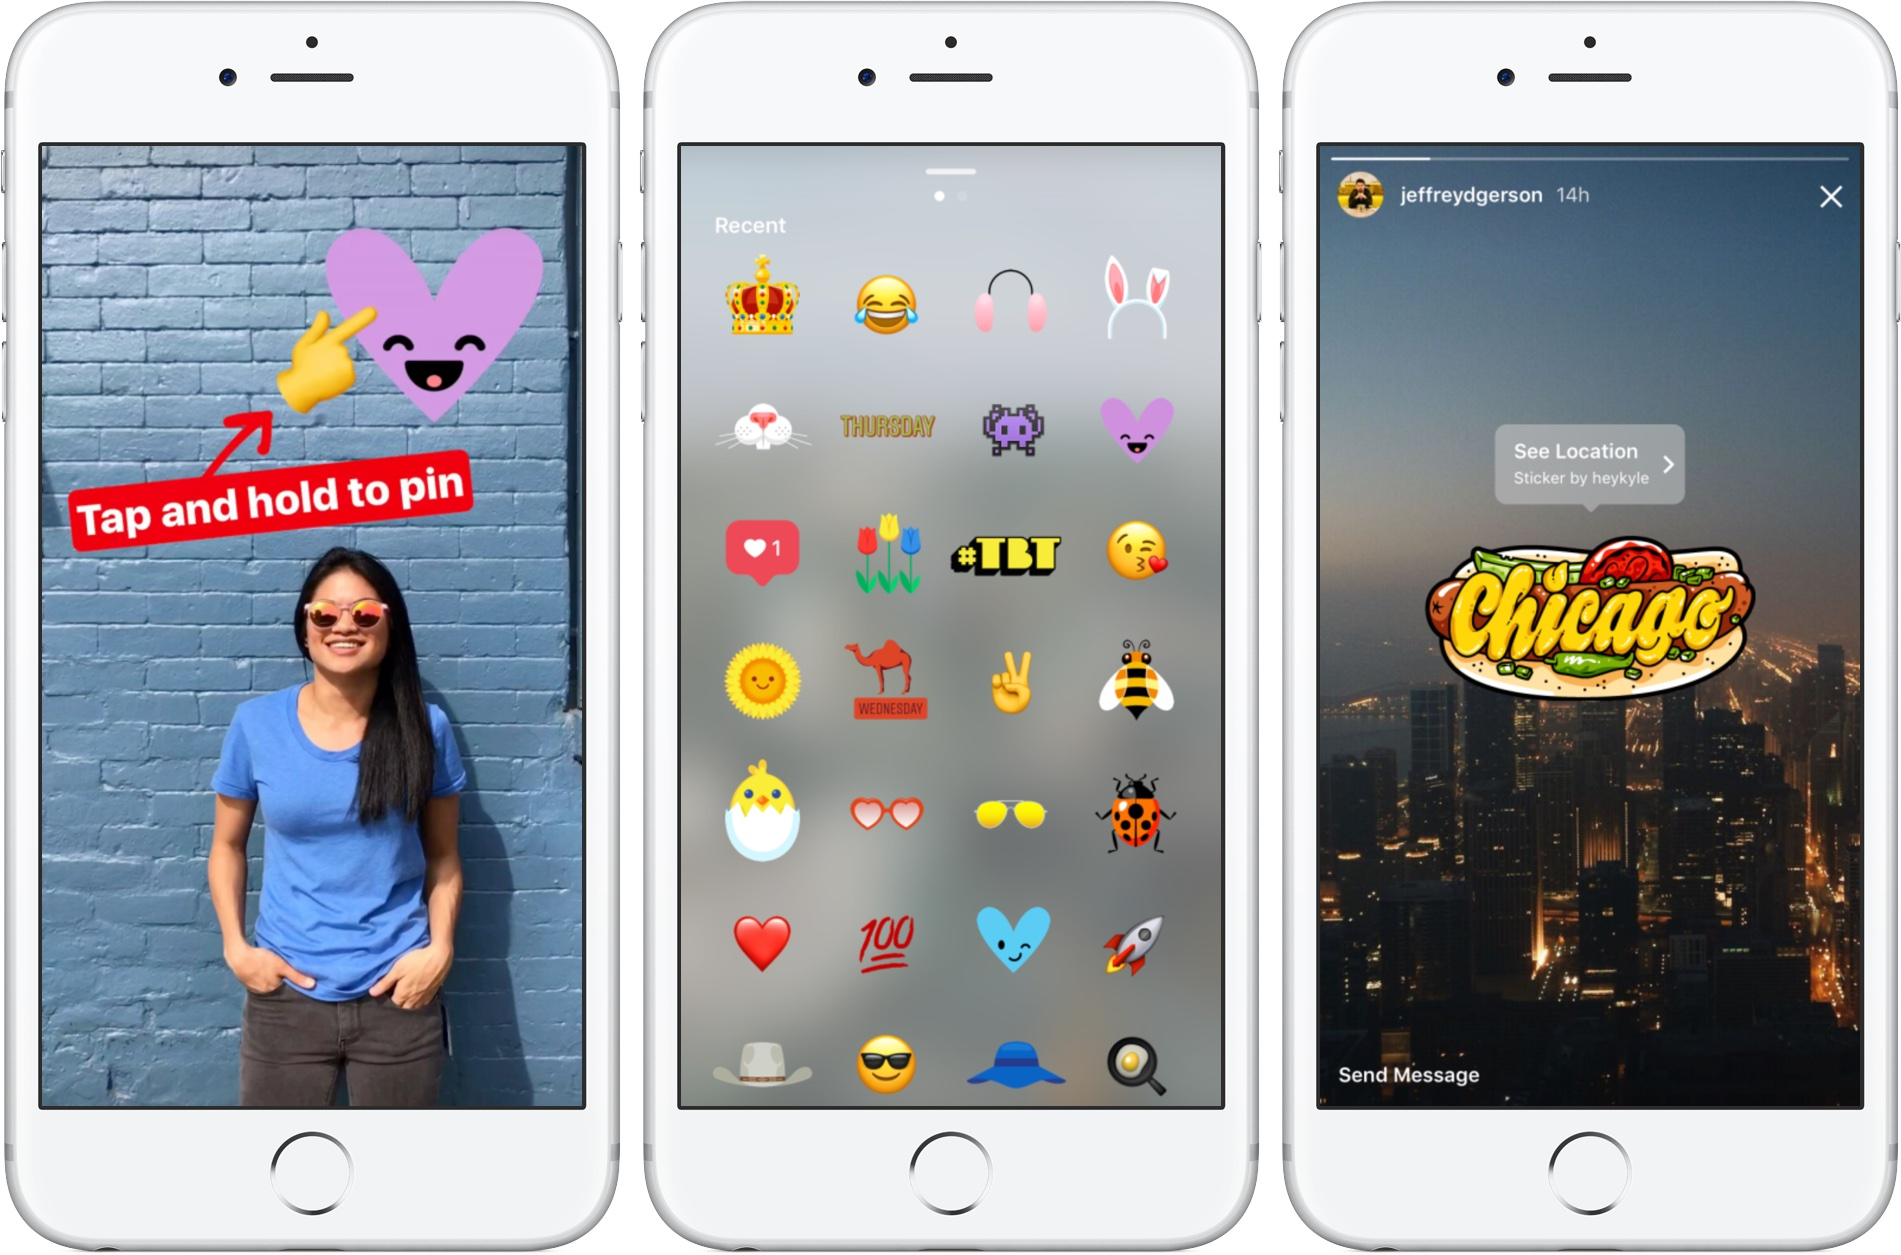 instagram launches new features for stickers as stories daily active users surpass snapchat stories daily active users surpass snapchat